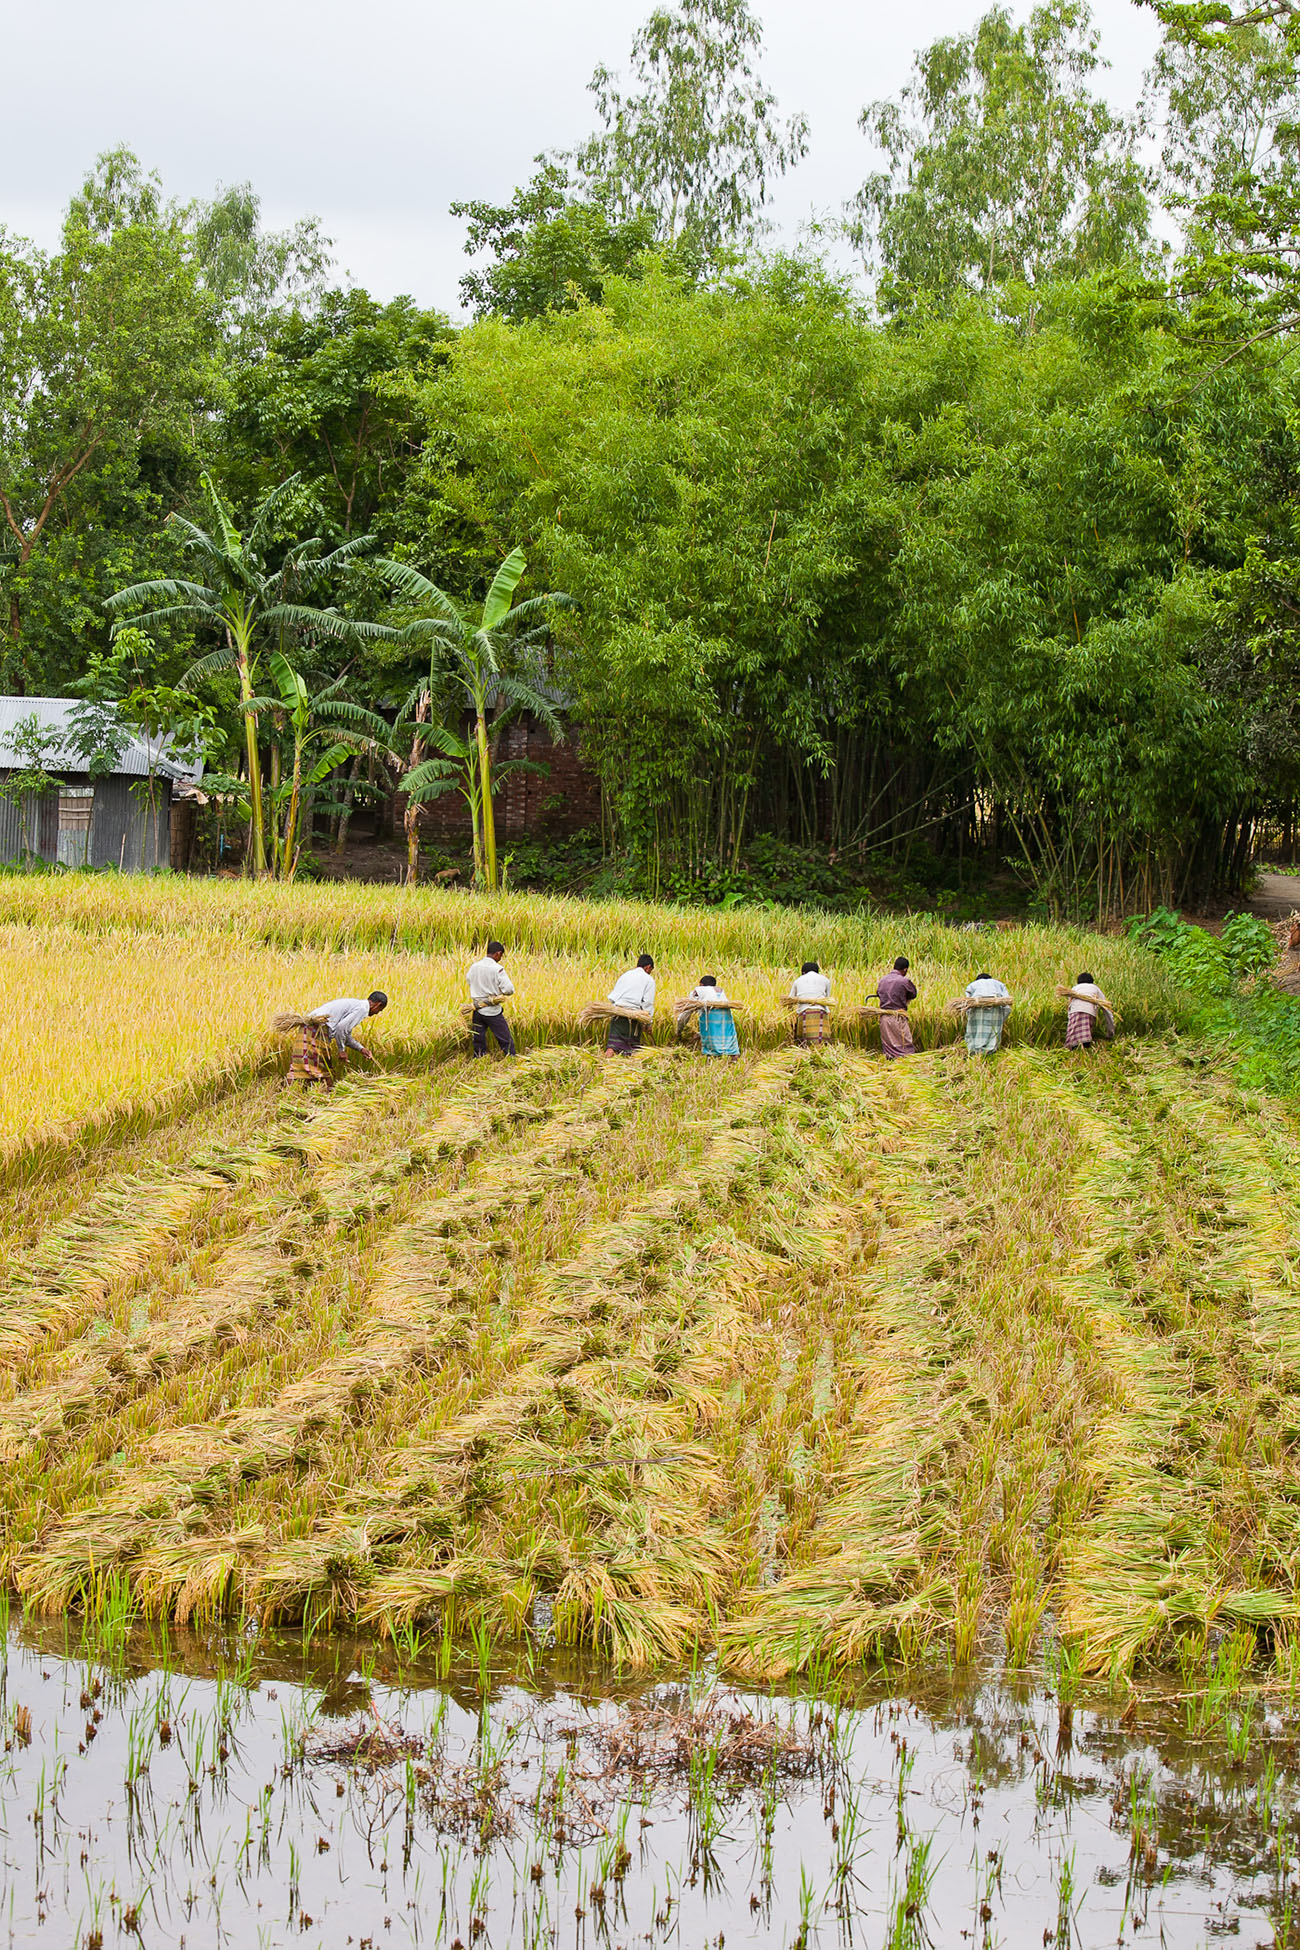 Villagers harvesting a field in India.